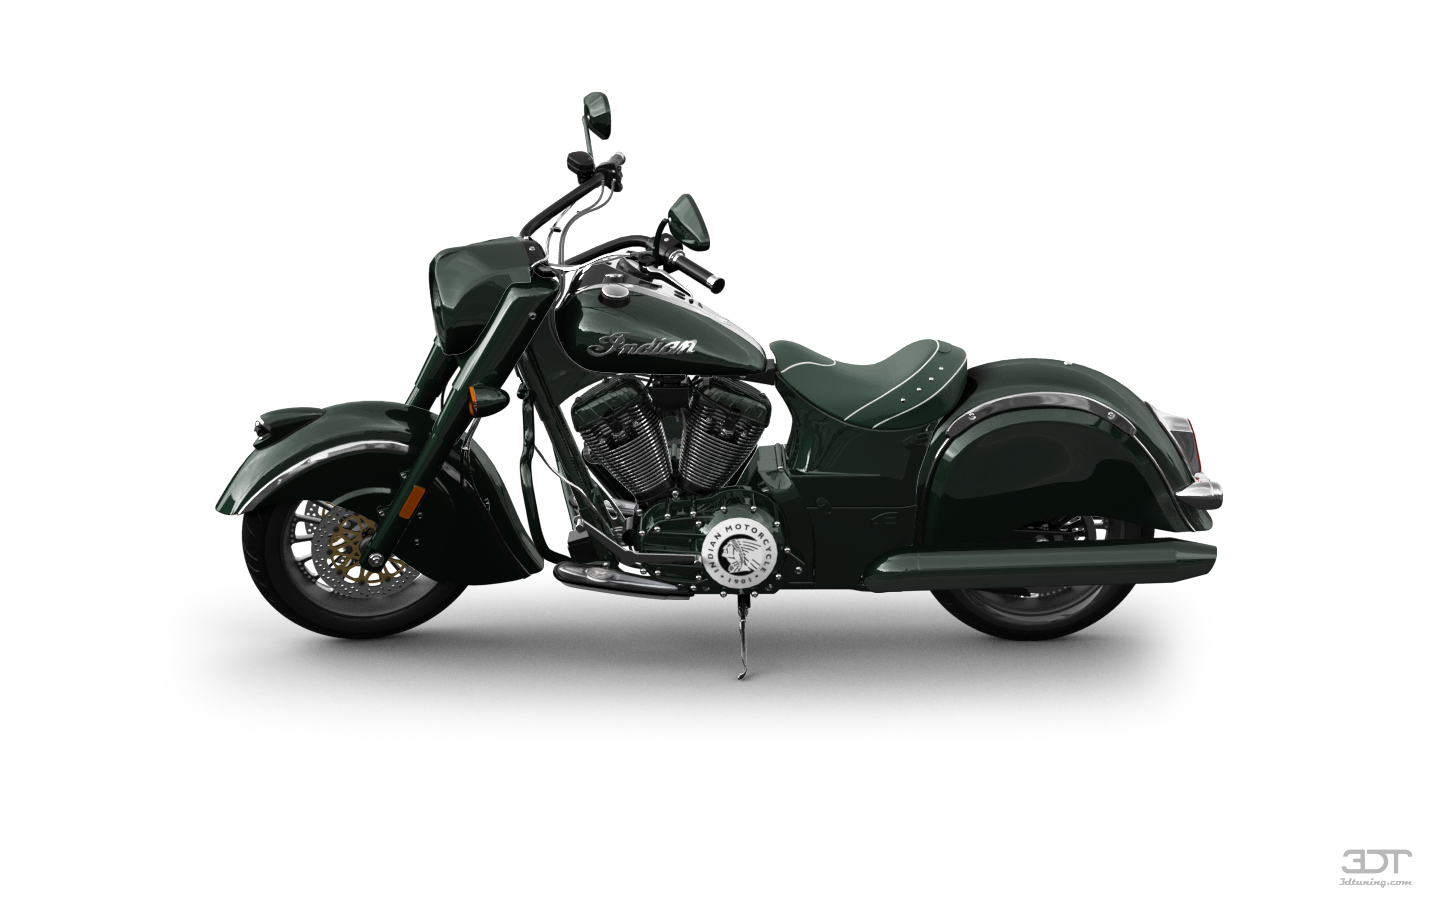 Indian Chief Dark Horse'16